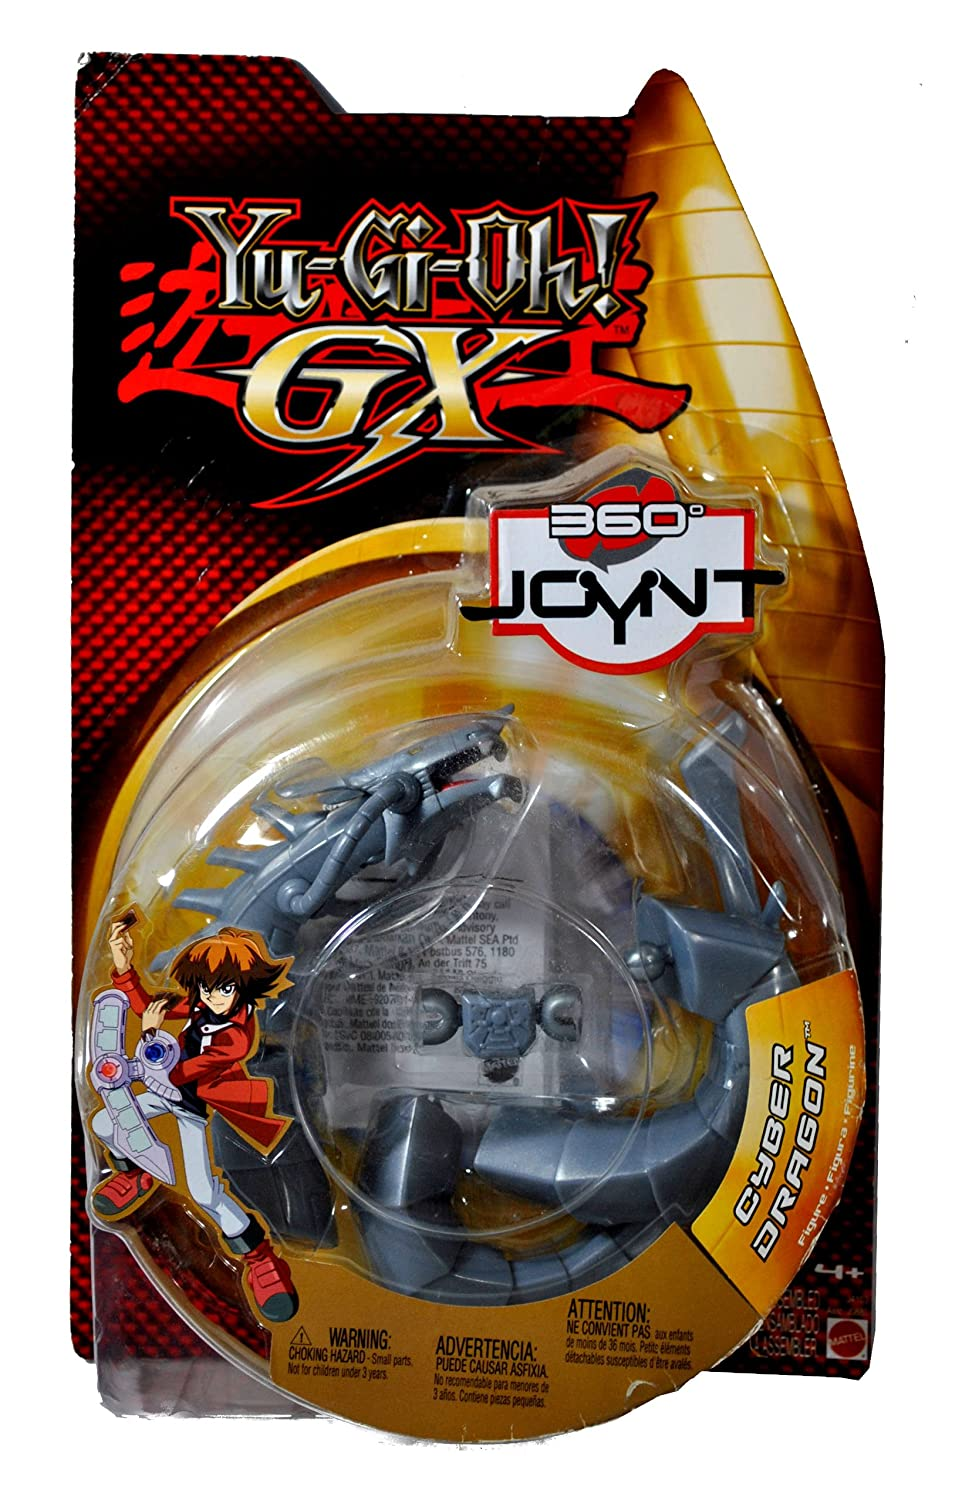 Mattel Year 2005 Yu-Gi-Oh GX 360 Joynt Series 6 Inch Tall Action Figure - CYBER DRAGON with Pop a Part Arm and Legs Feature by Yu-Gi-Oh